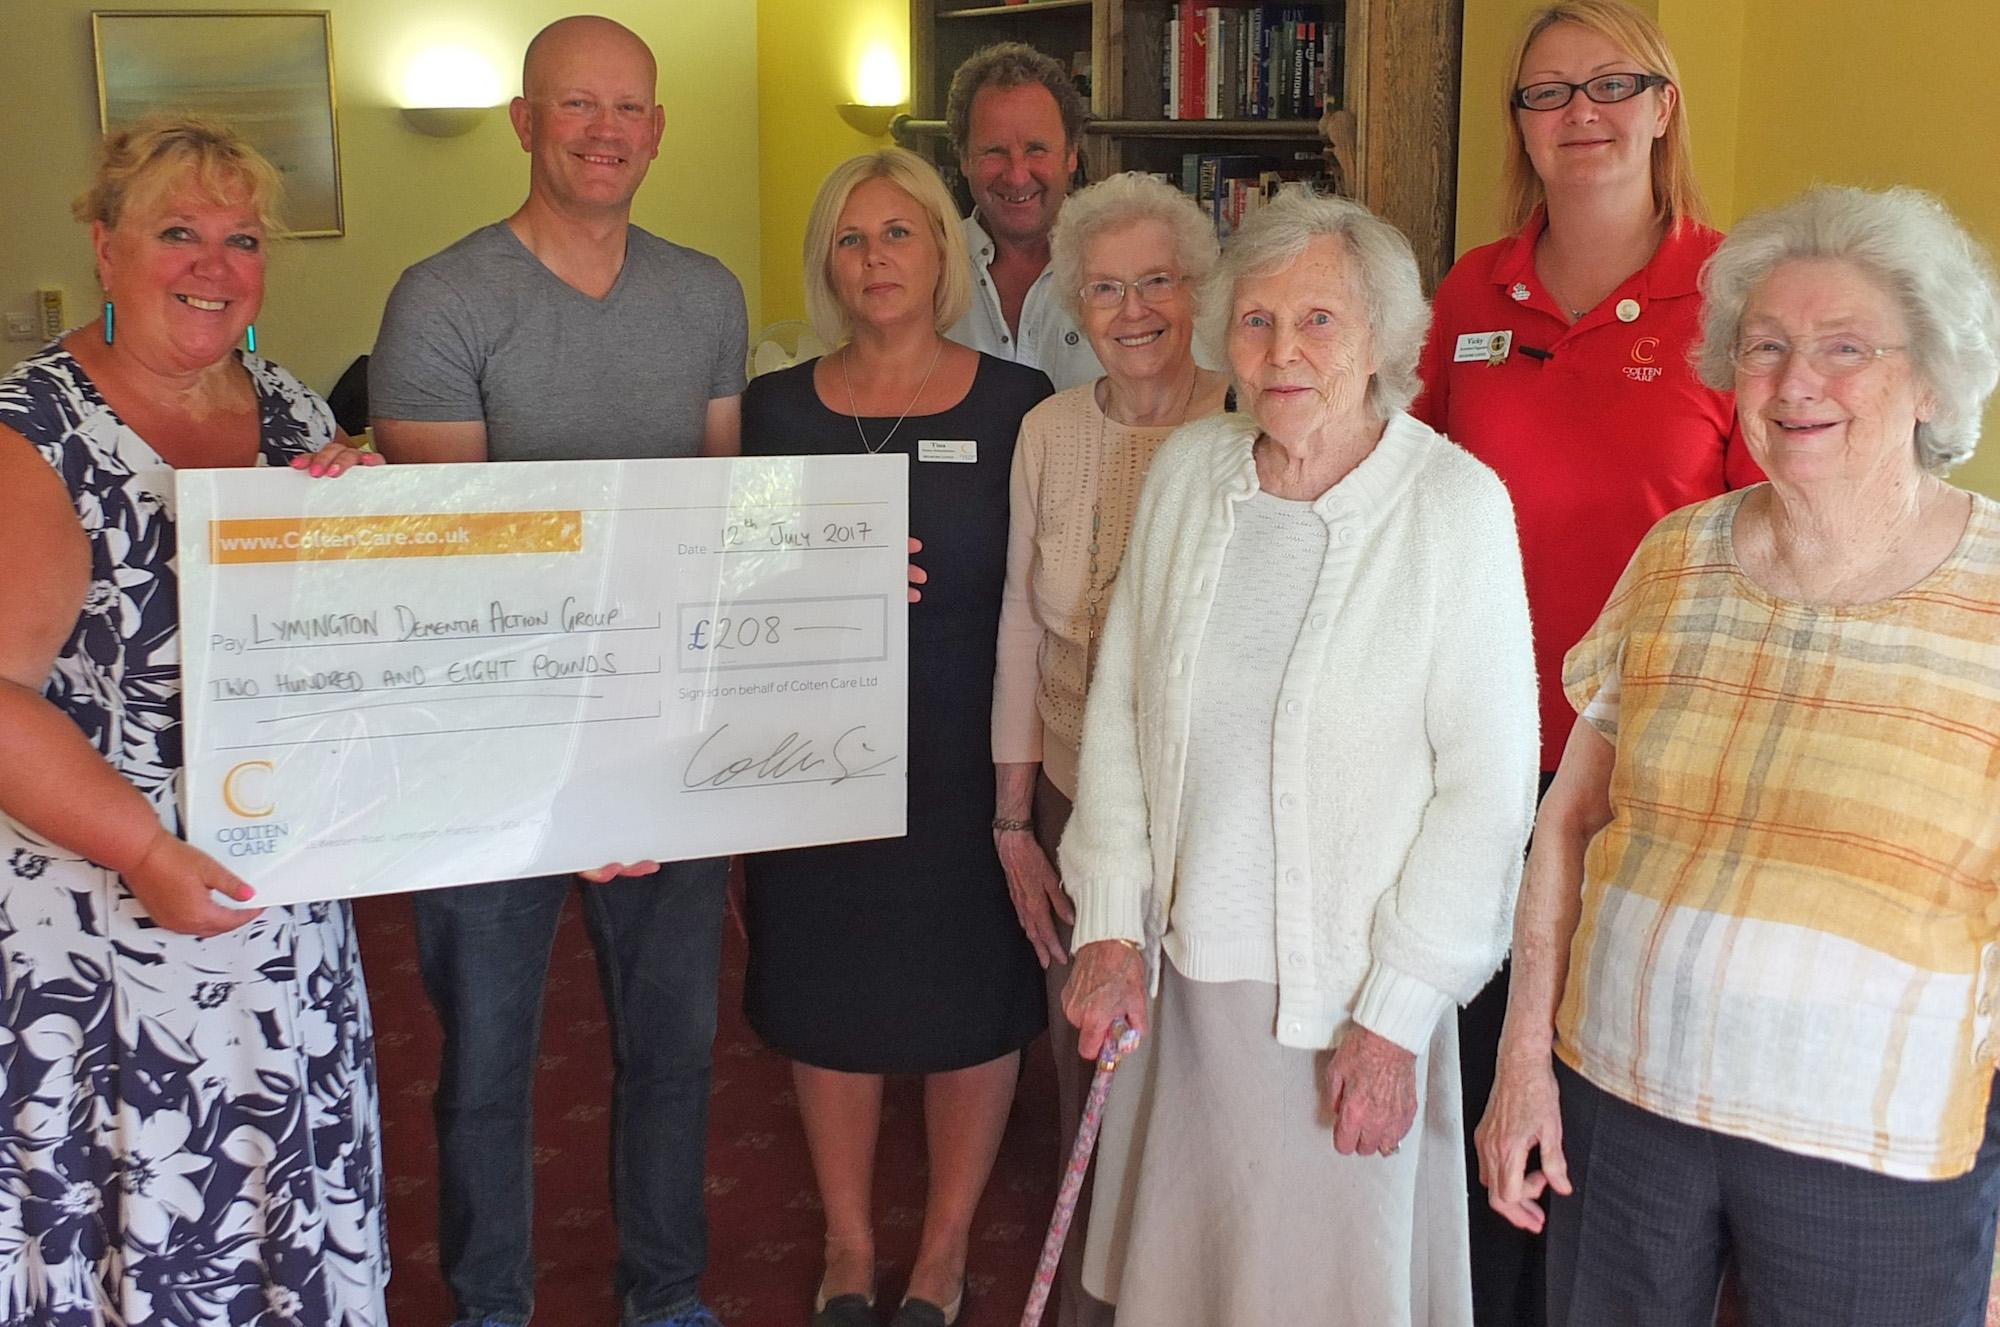 Colten Care Quiz in aid of Lymington Dementia Action Group